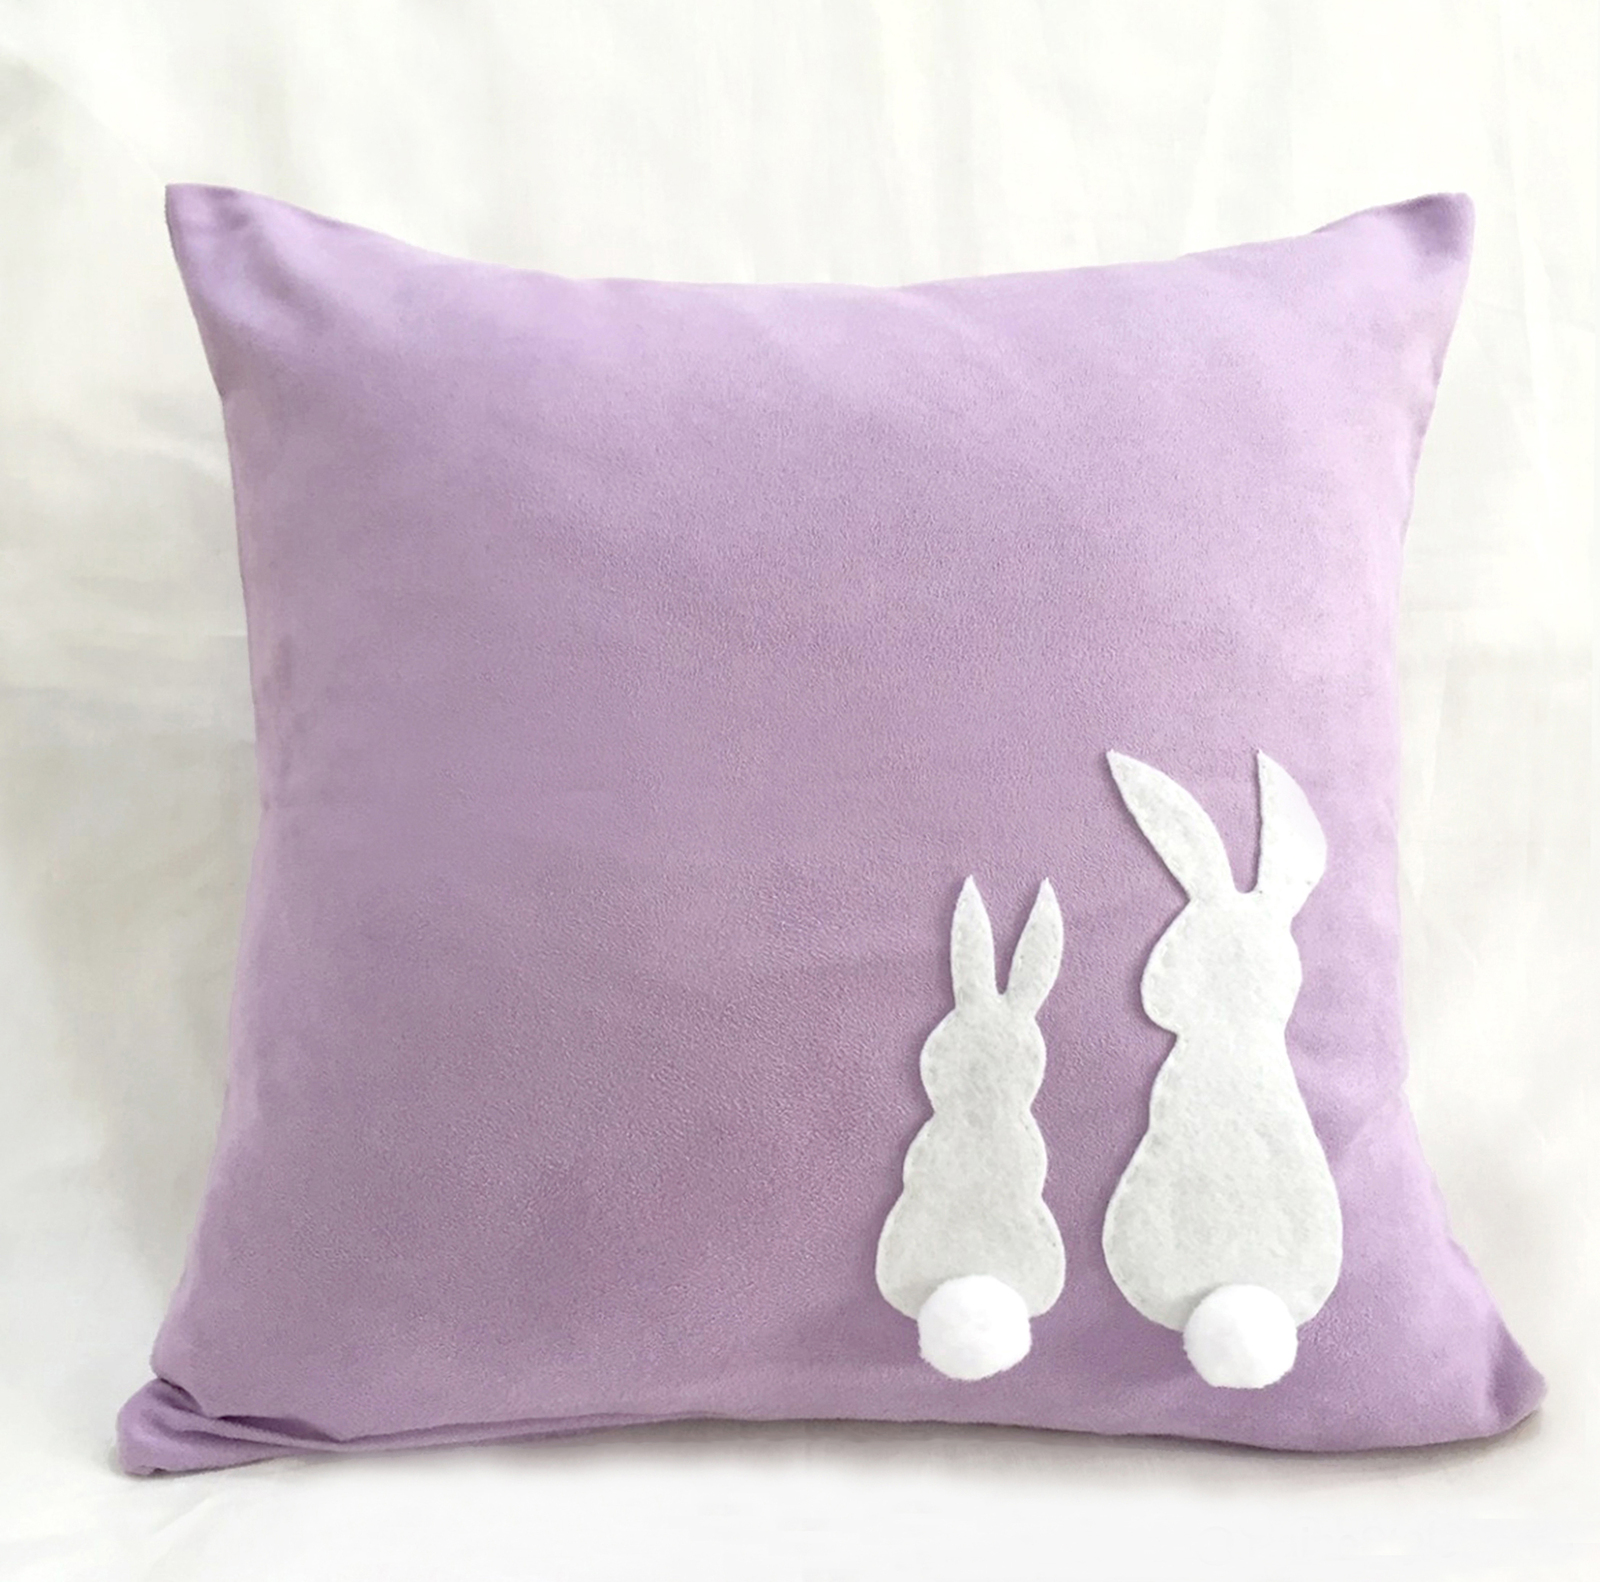 Handmade Two Cute Rabbits Pink Decorative Pillow Cover. Children Room Decor